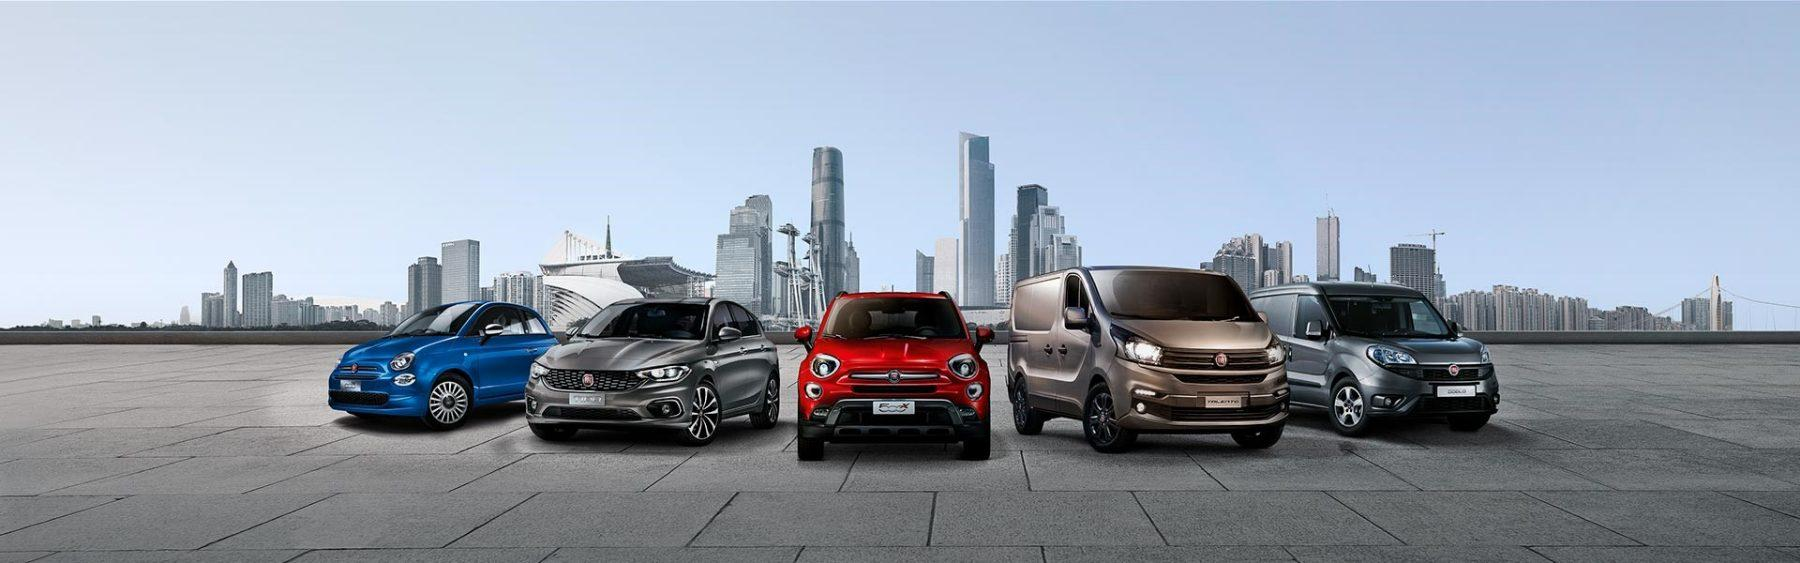 Autoland Pocking | Fiat - Jeep - Abarth - Fiat Professional  Neuwagen